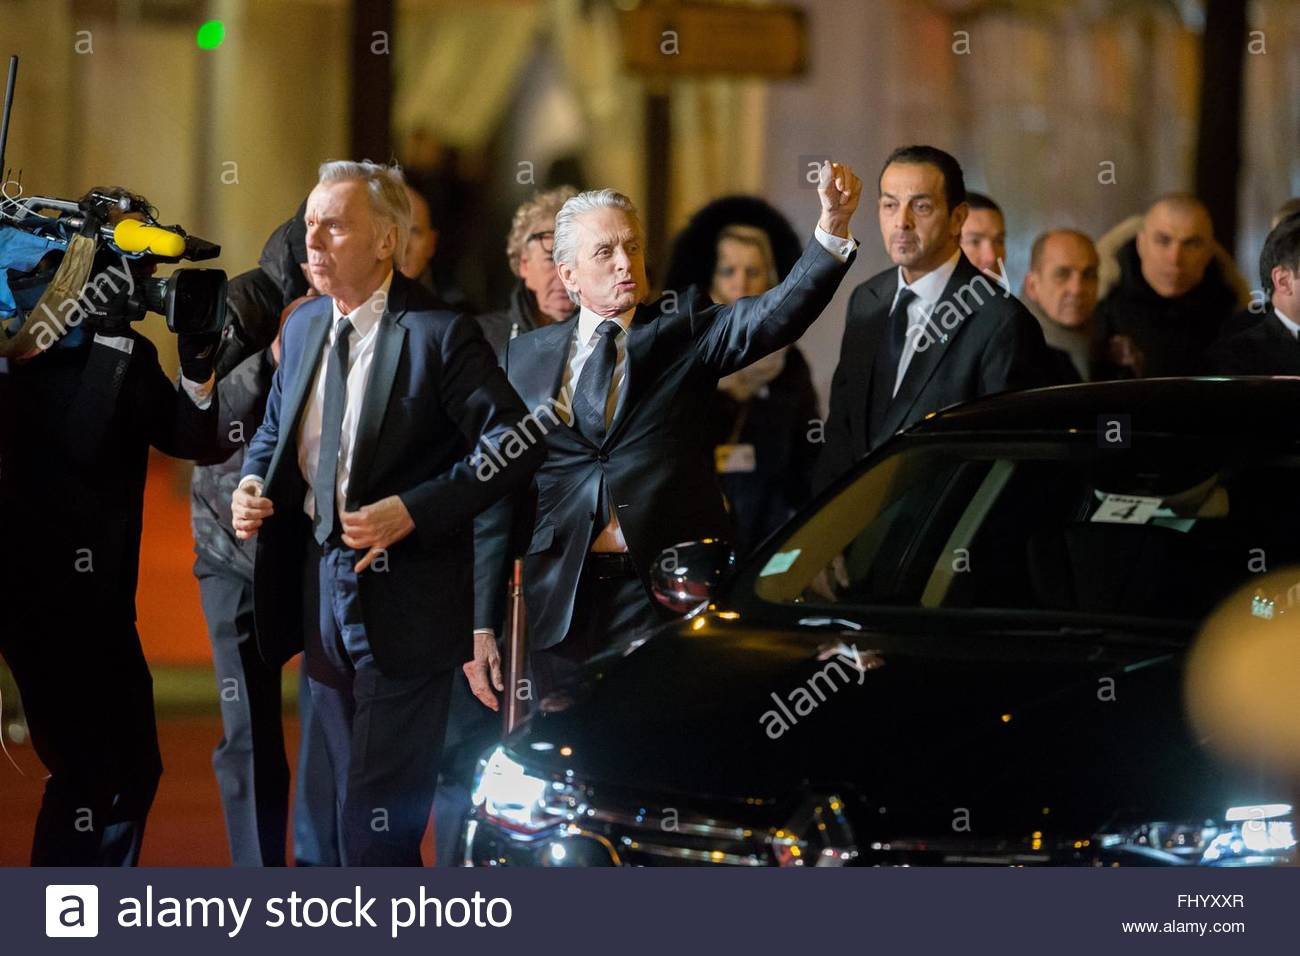 Paris, France. February 26th, 2016. FRANCE, Paris: US actor Michael Douglas walks on the red carpet of the 41st Stock Photo